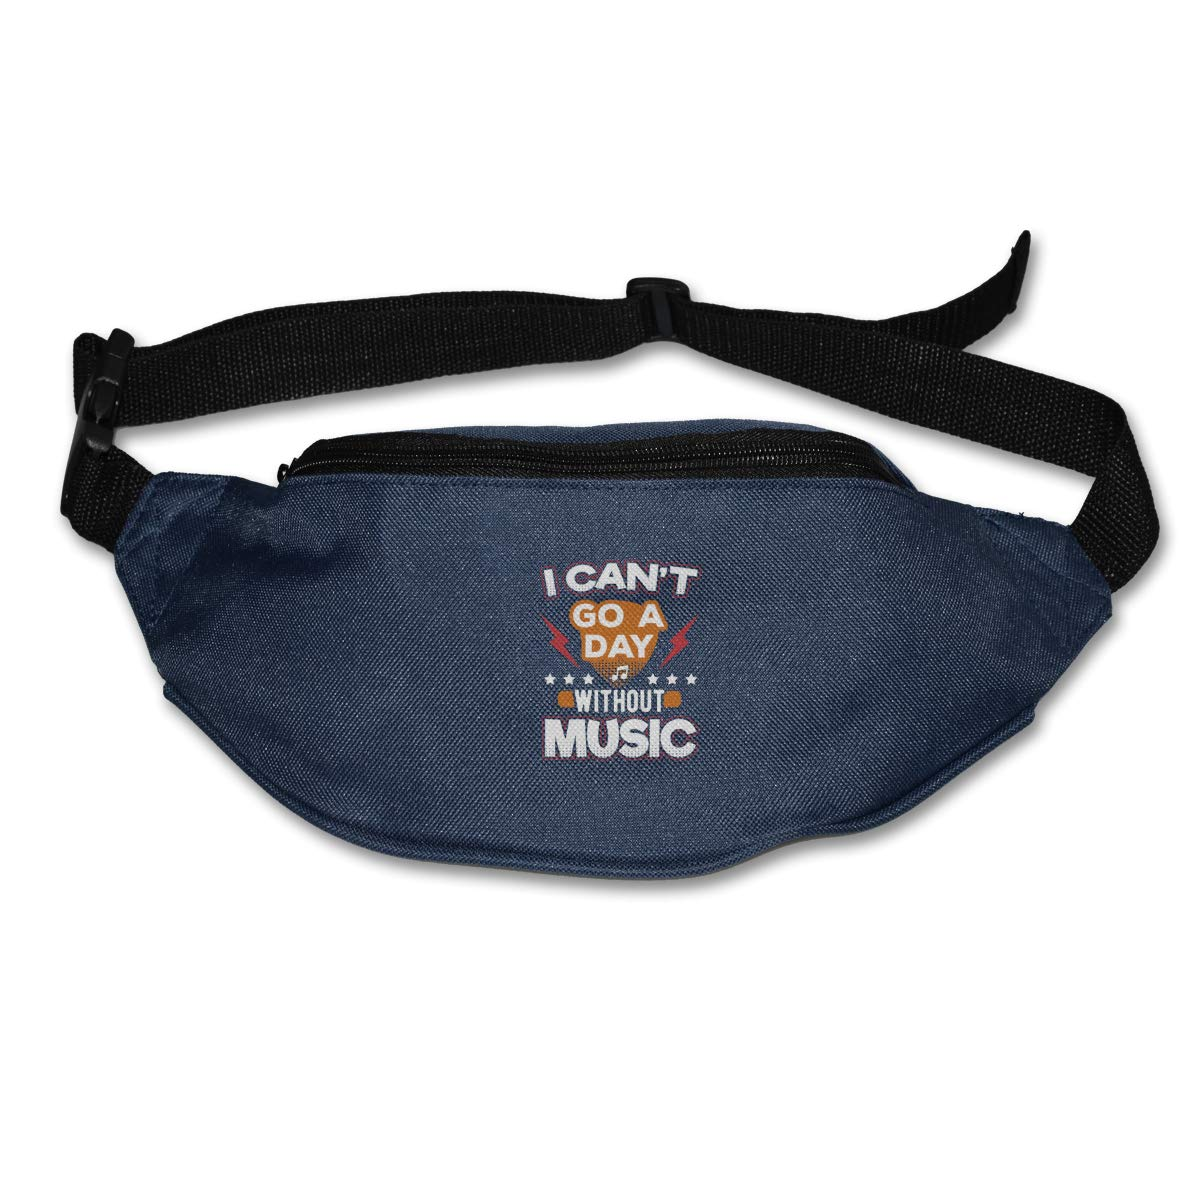 I Cant Go A Day Without Music Sport Waist Packs Fanny Pack Adjustable